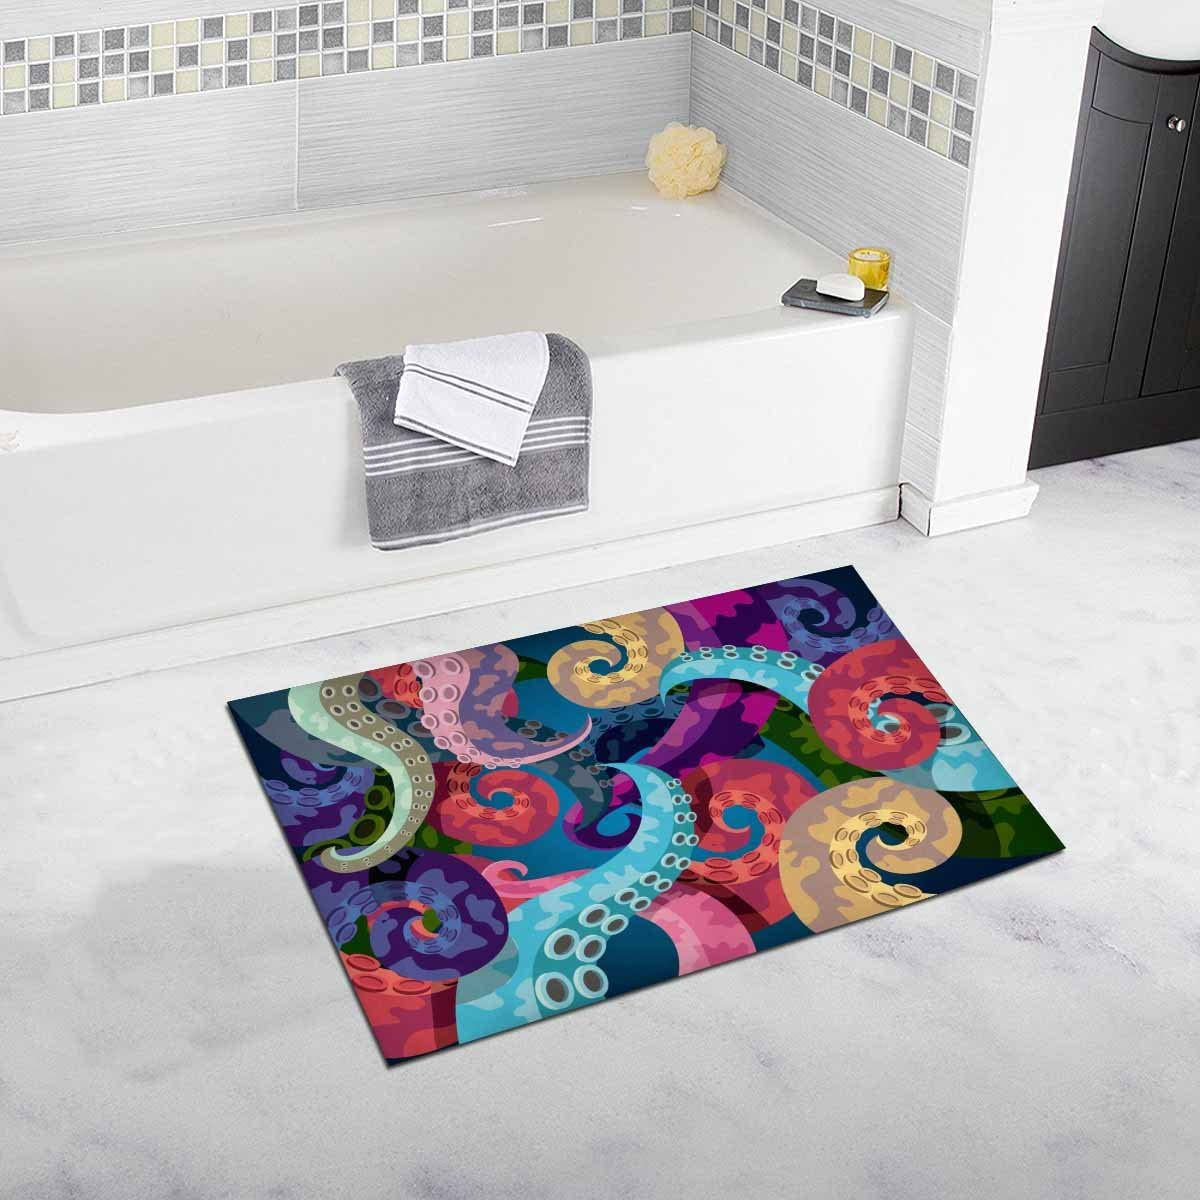 INTERESTPRINT Octopus – Sea Monster Bath Rug Non-Slip Bathroom Mat 20 W X 32 L Inches